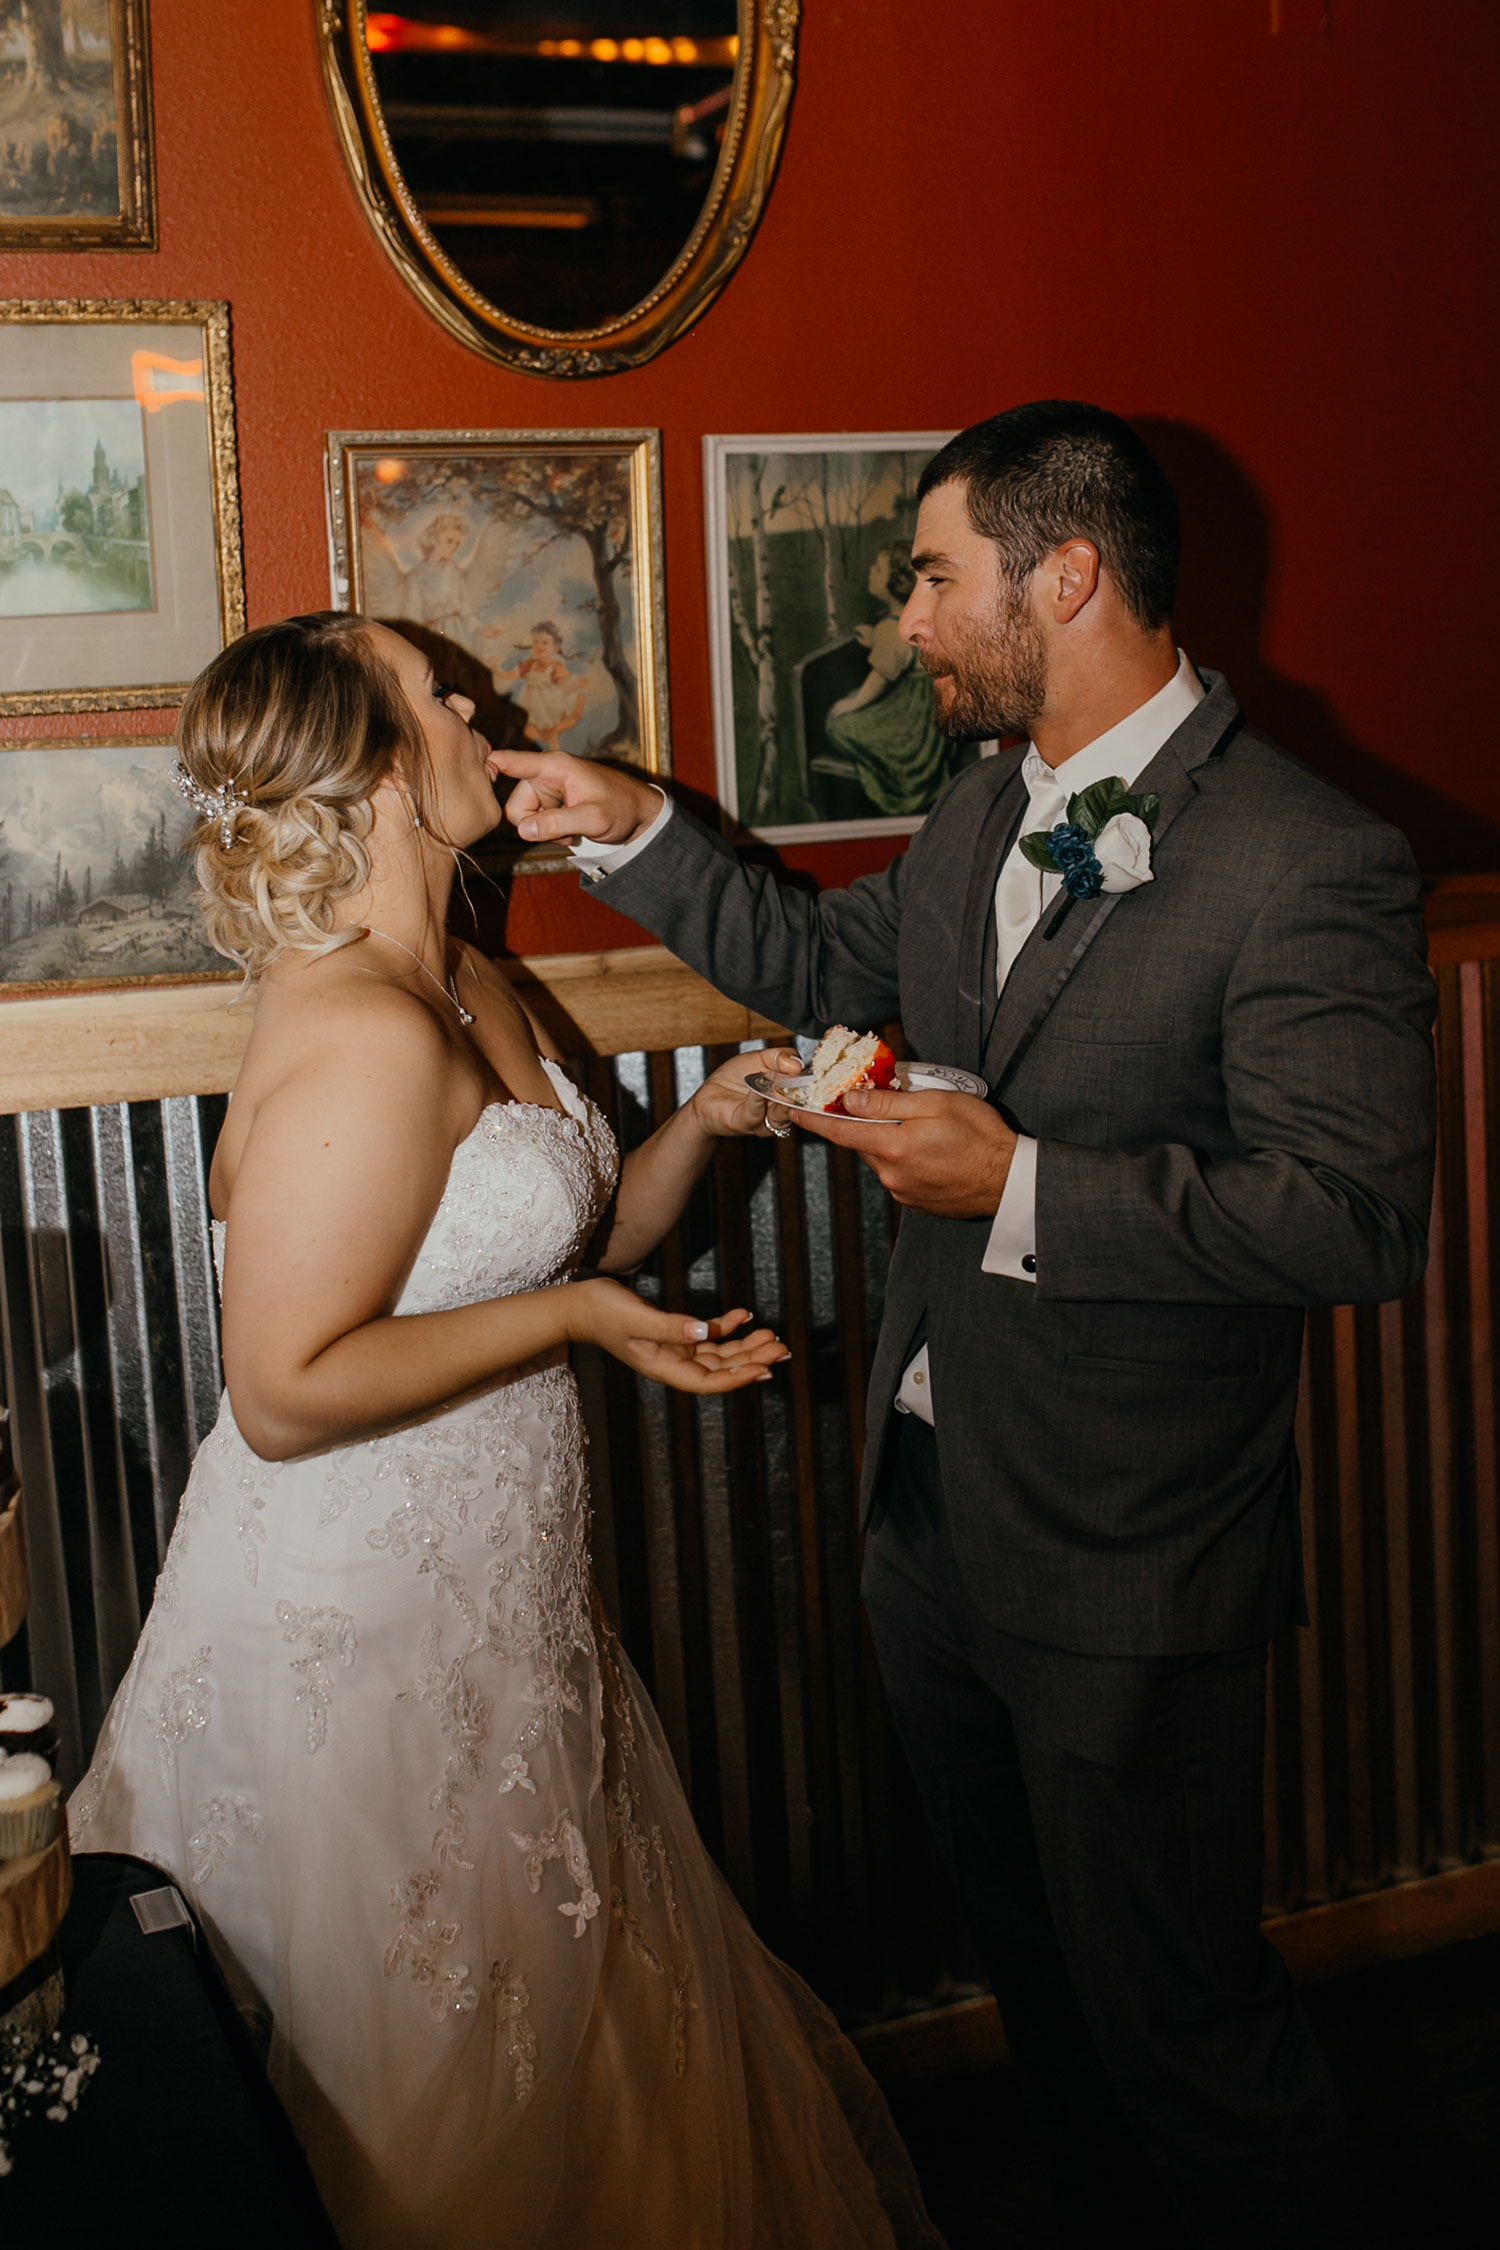 bride-eating-cheese-cake-off-groom-finger-decades-event-center-building-desmoines-iowa-raelyn-ramey-photography..jpg